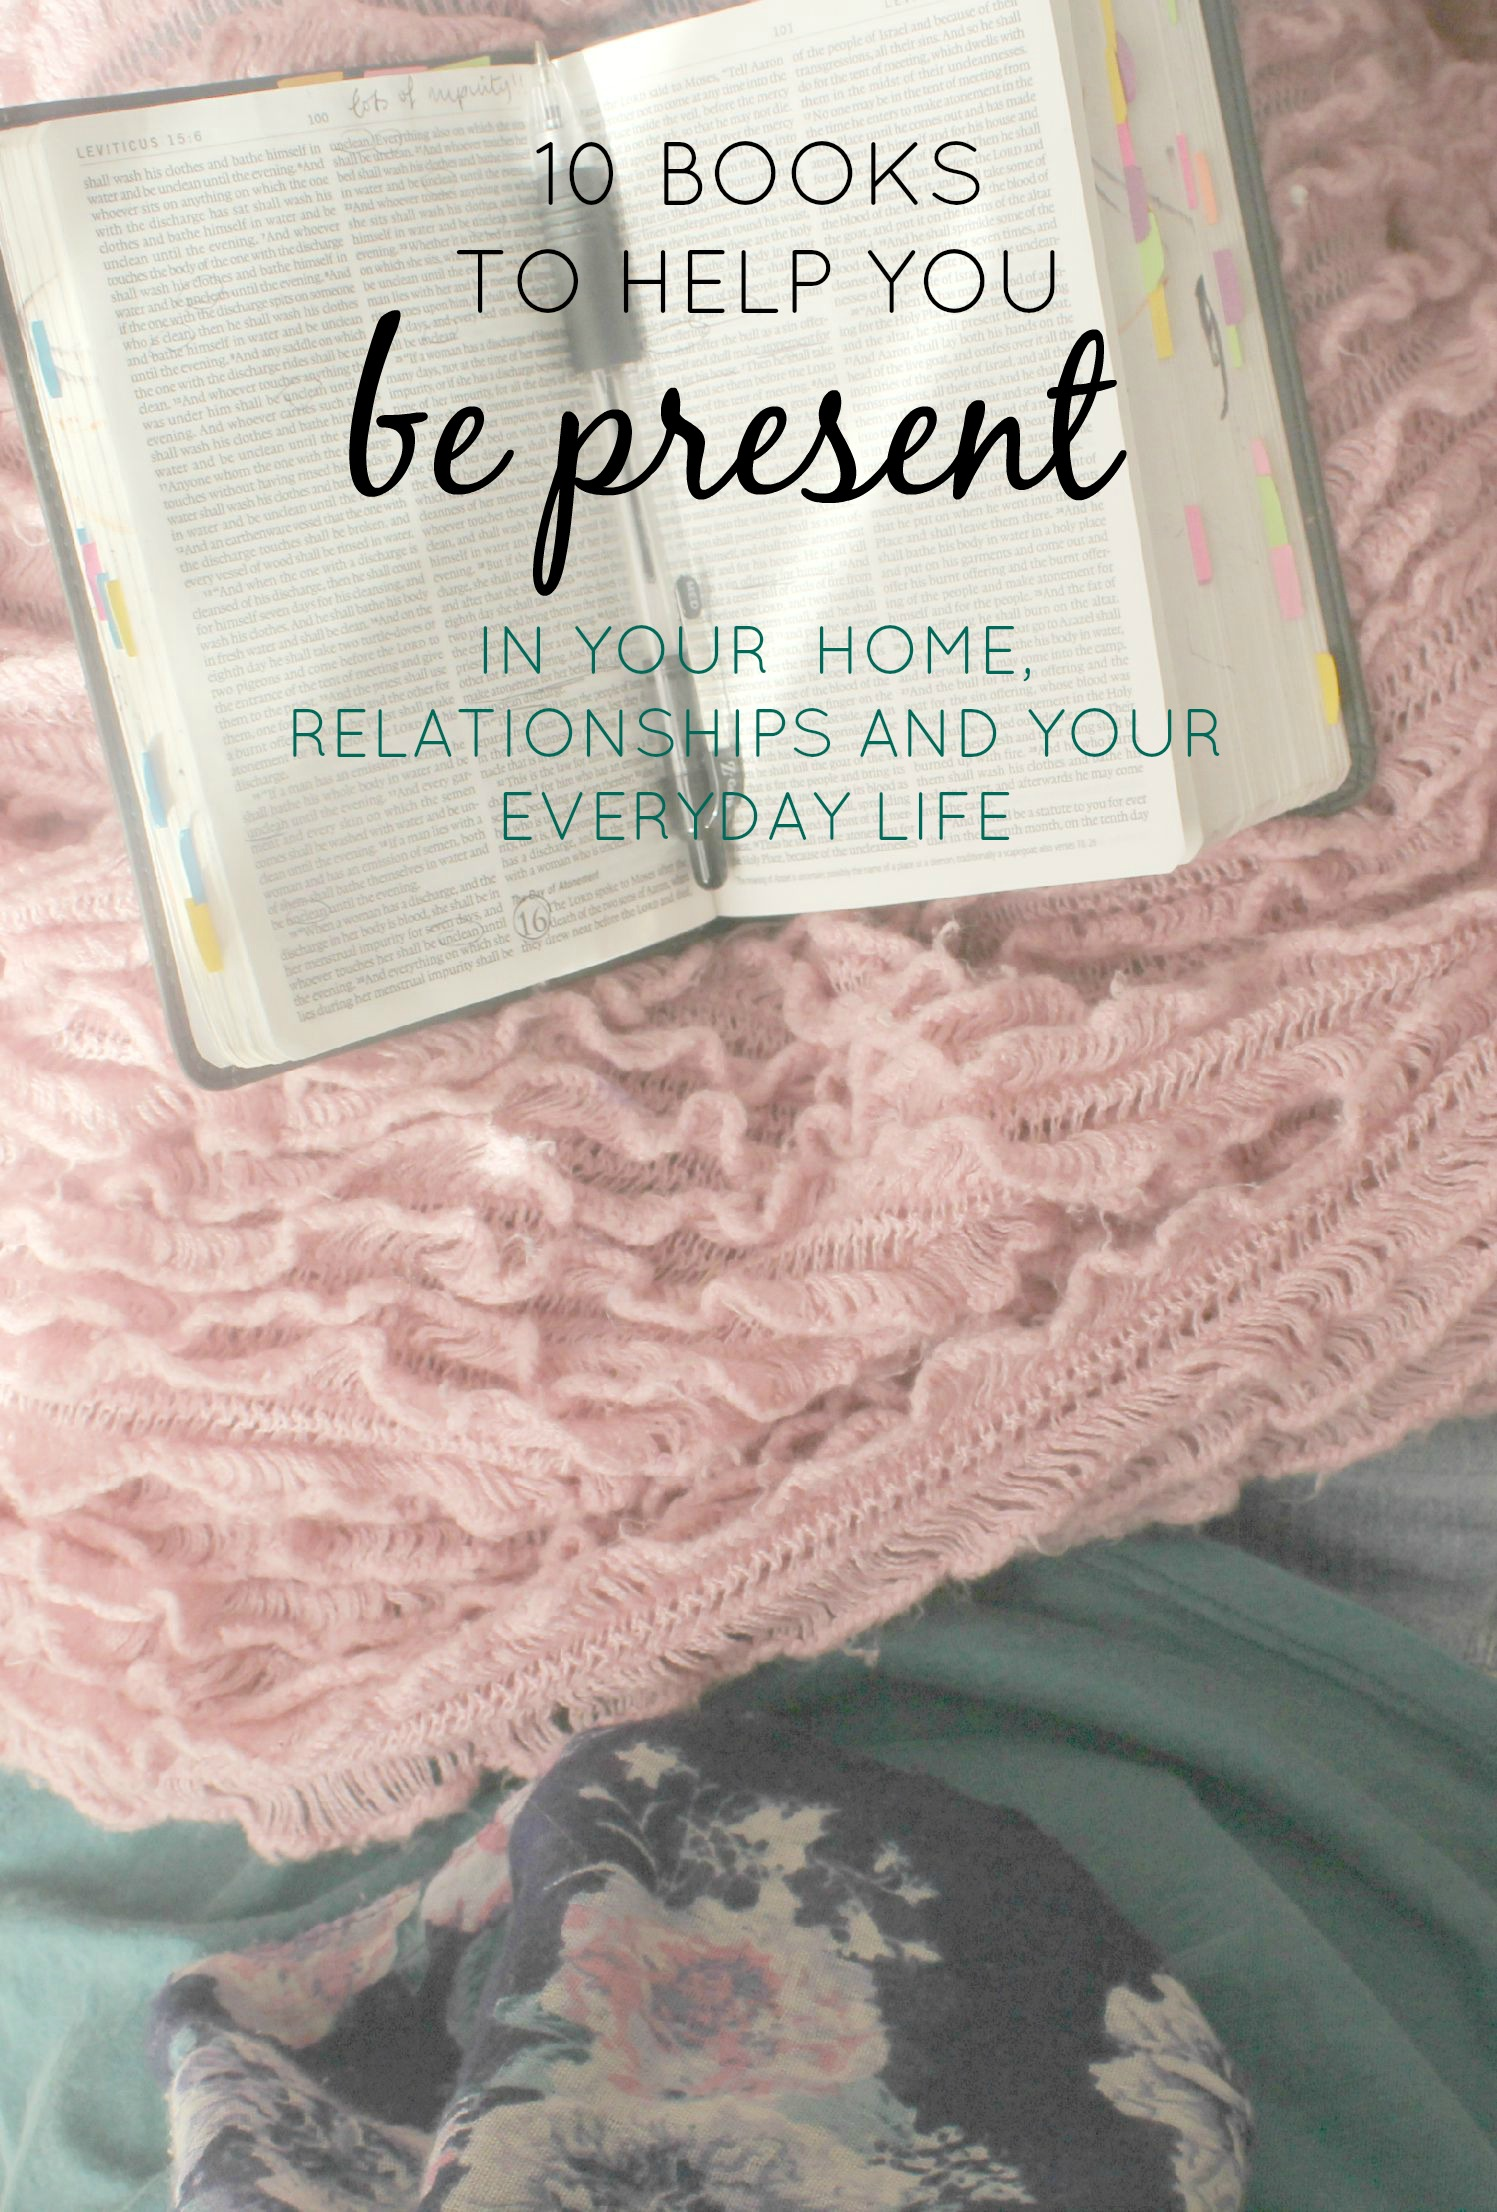 Books to help you be present in your home, relationships and everyday life